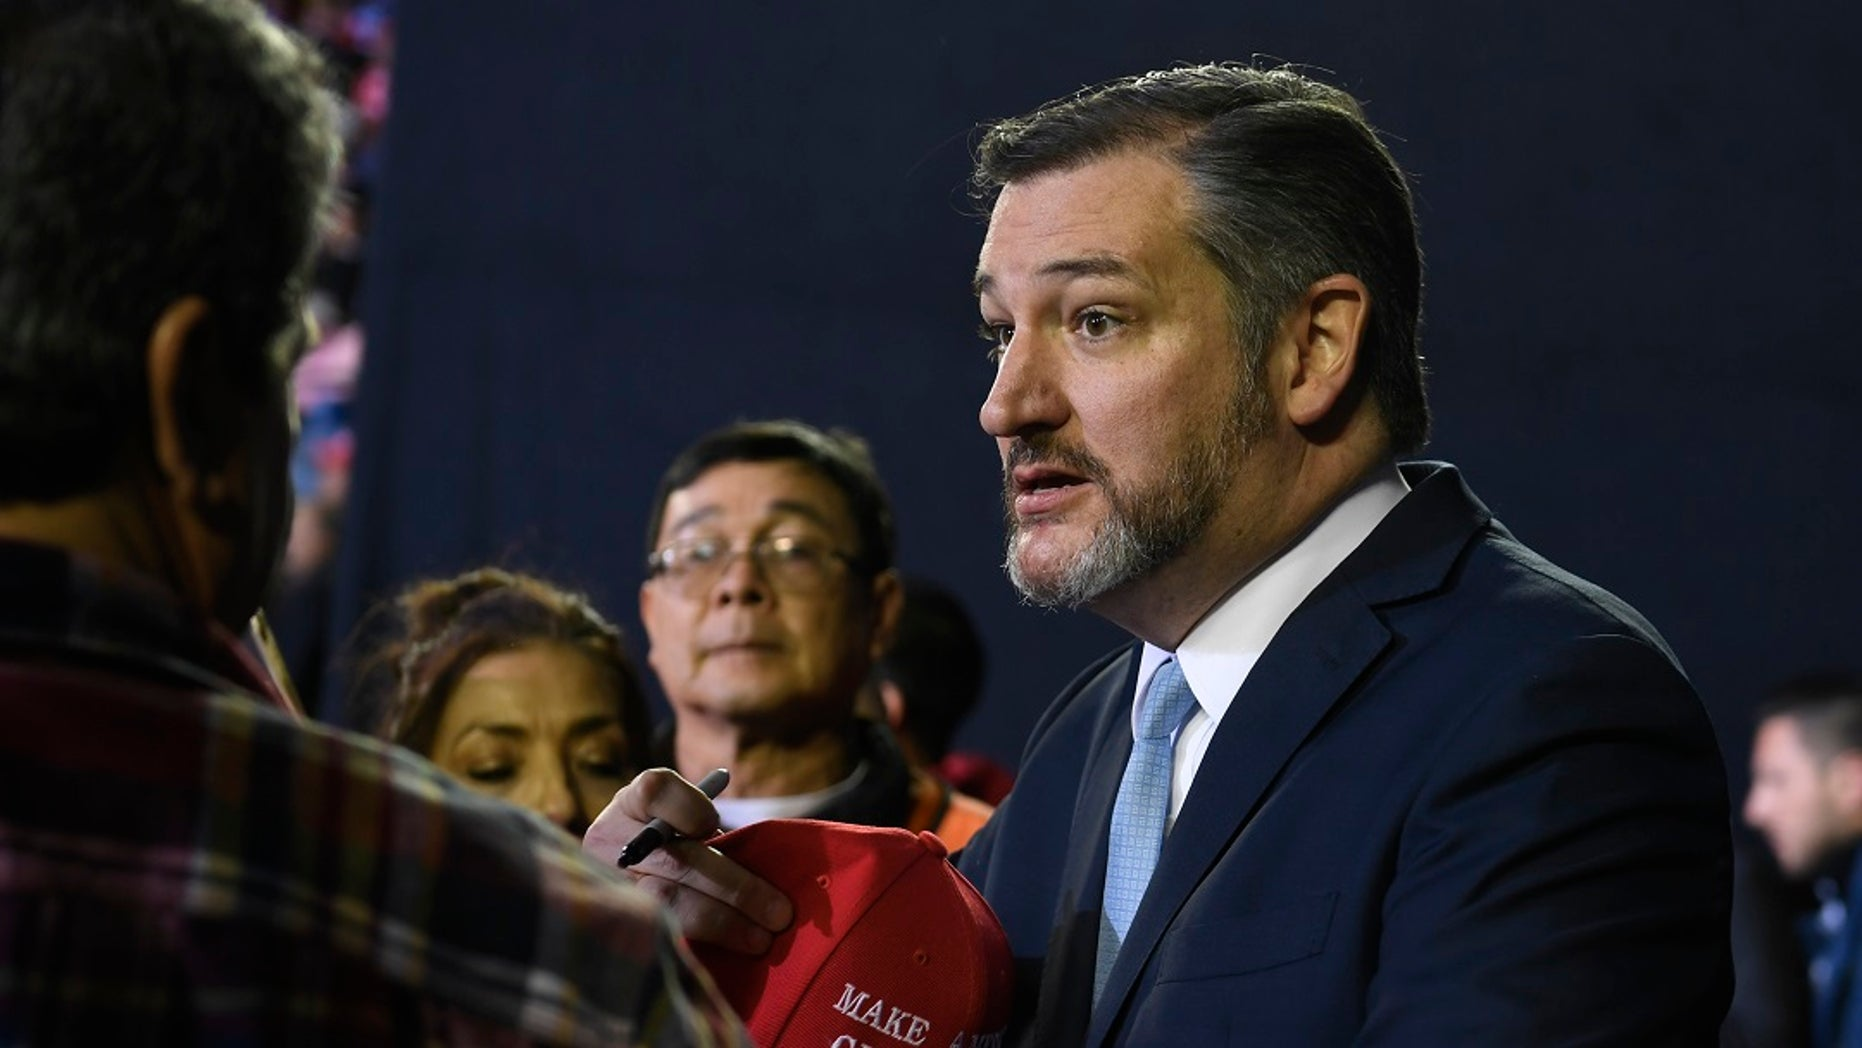 Sen. Ted Cruz, R-Texas, attends a rally with President Trump in El Paso in February. (AP Photo / Susan Walsh)